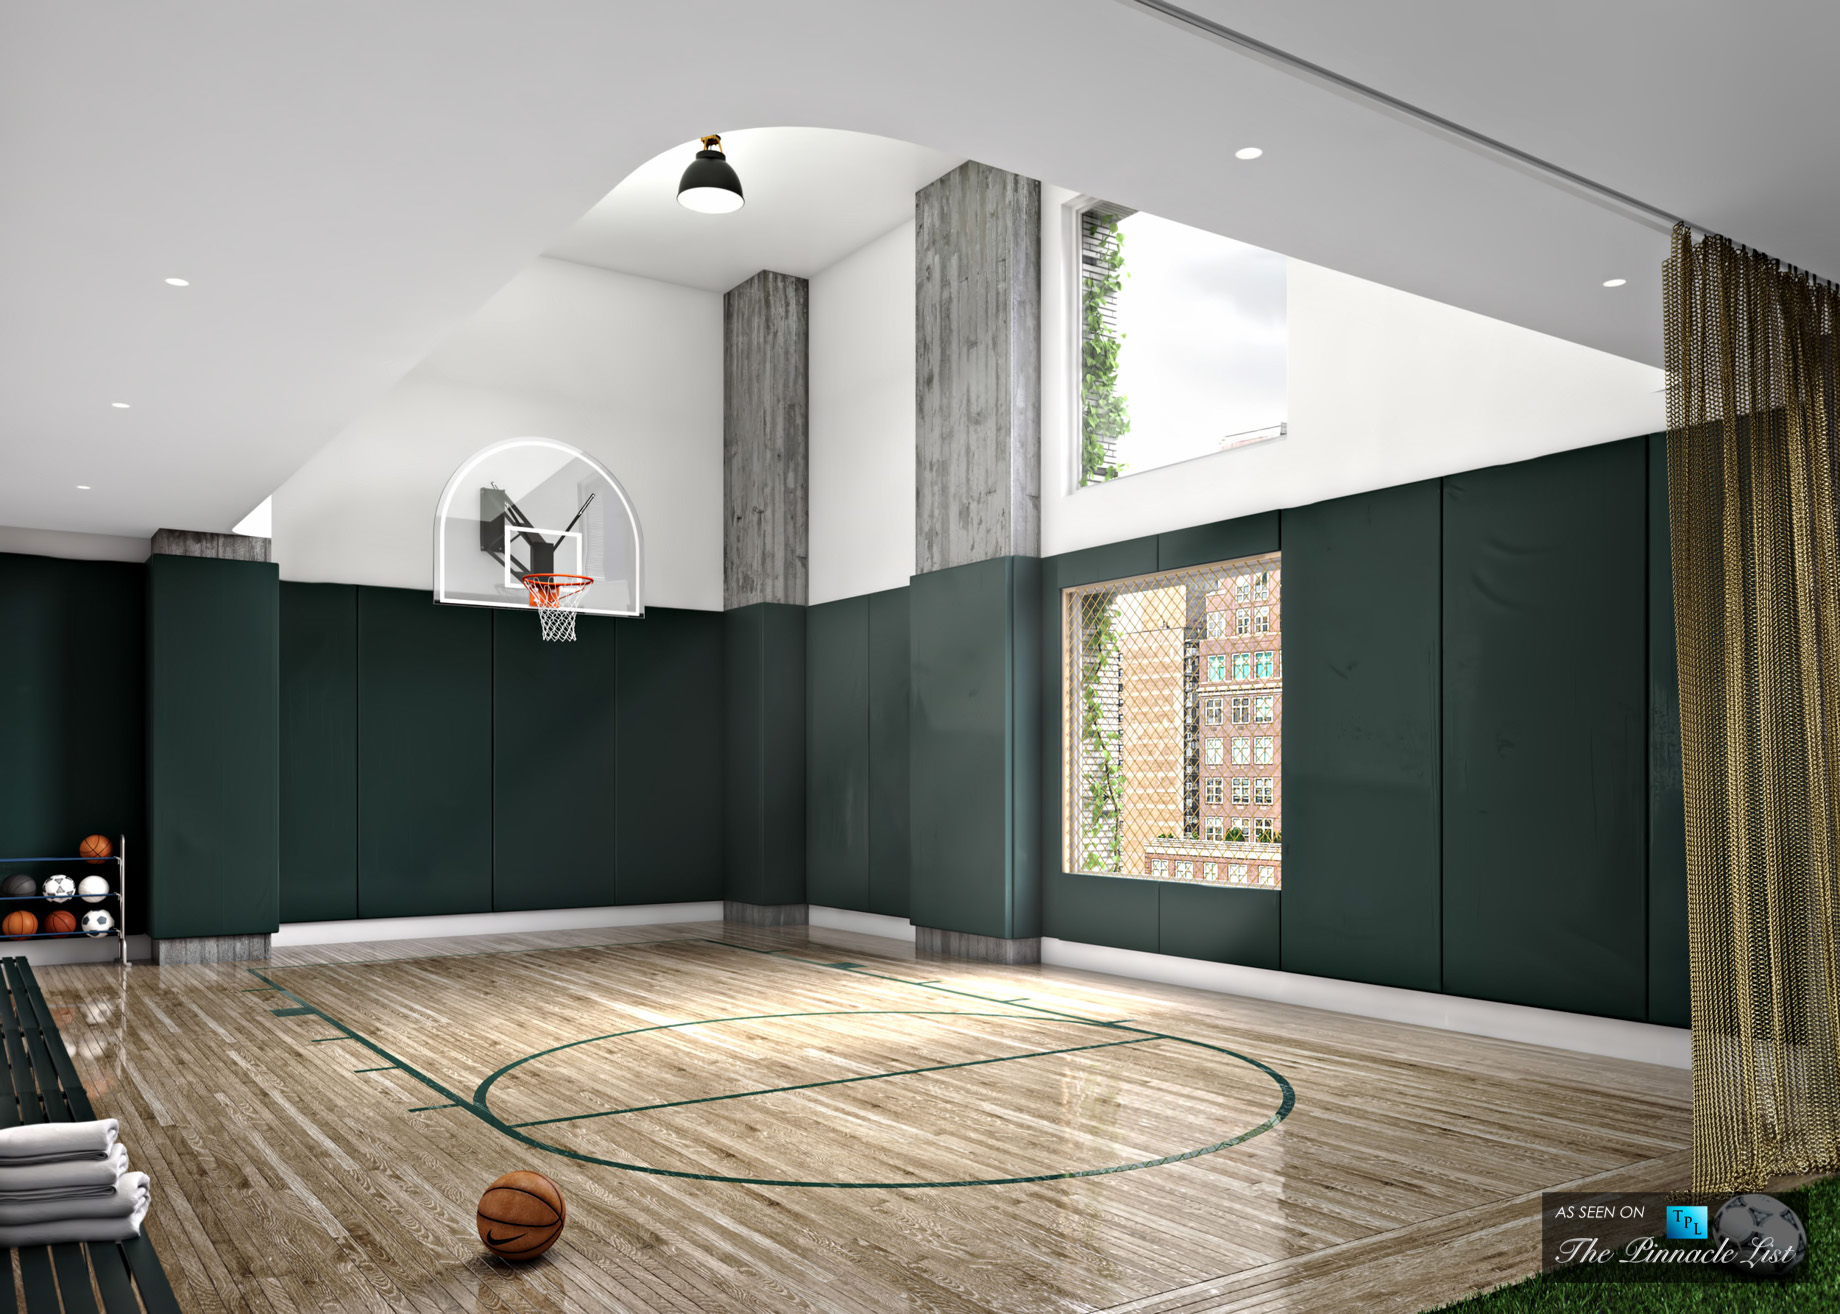 180 East 88th Street - New York Citys Hottest New Development Fitness Rooms